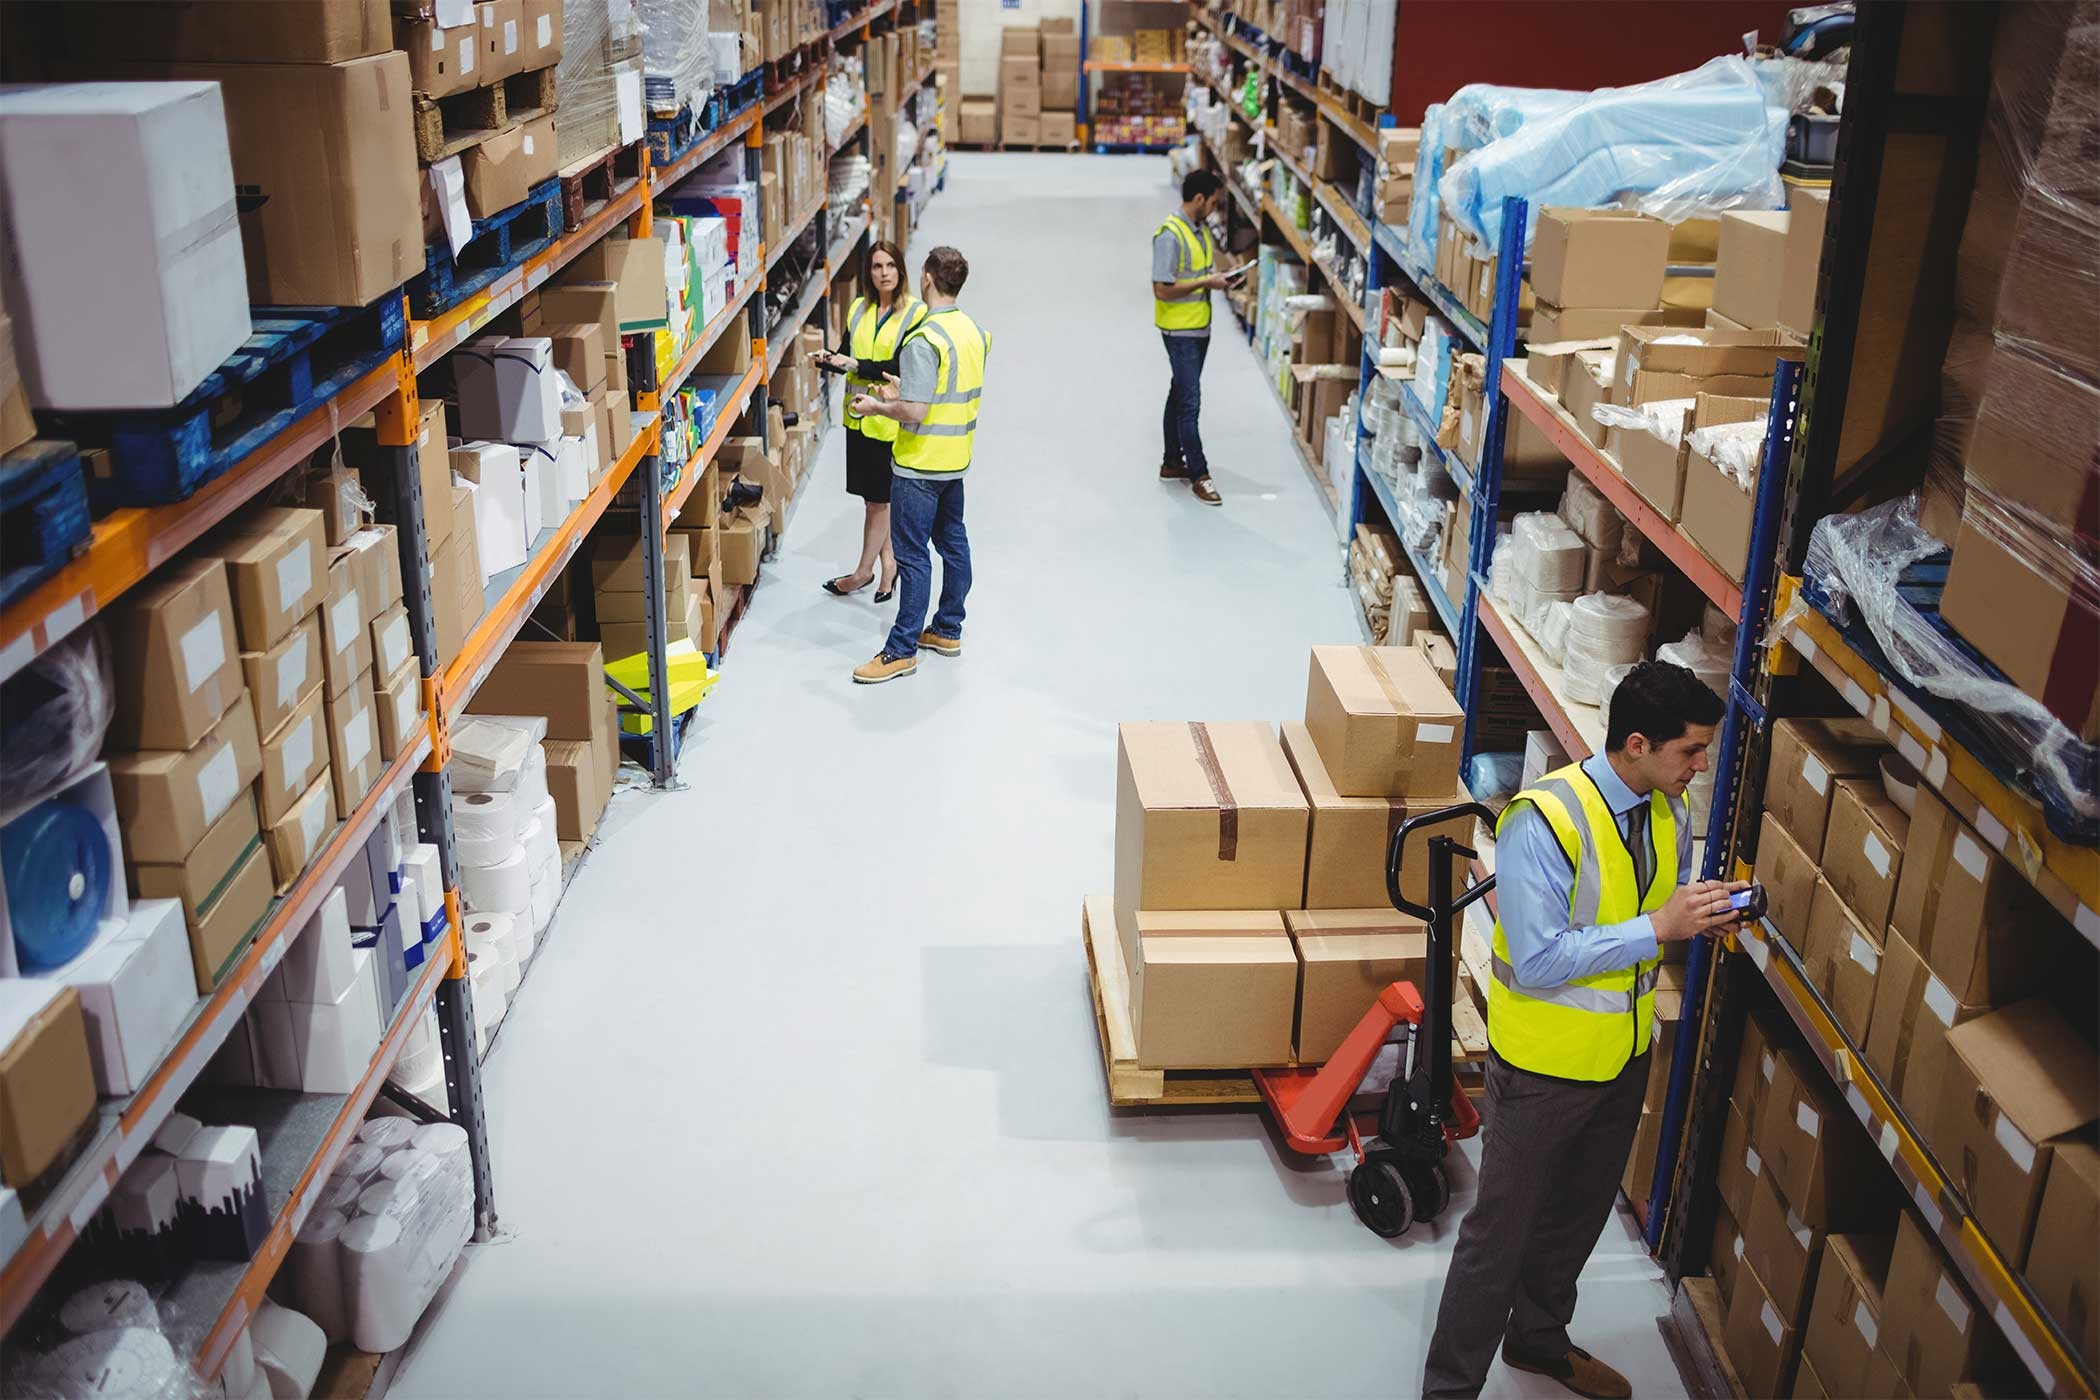 Warehouse with workers moving